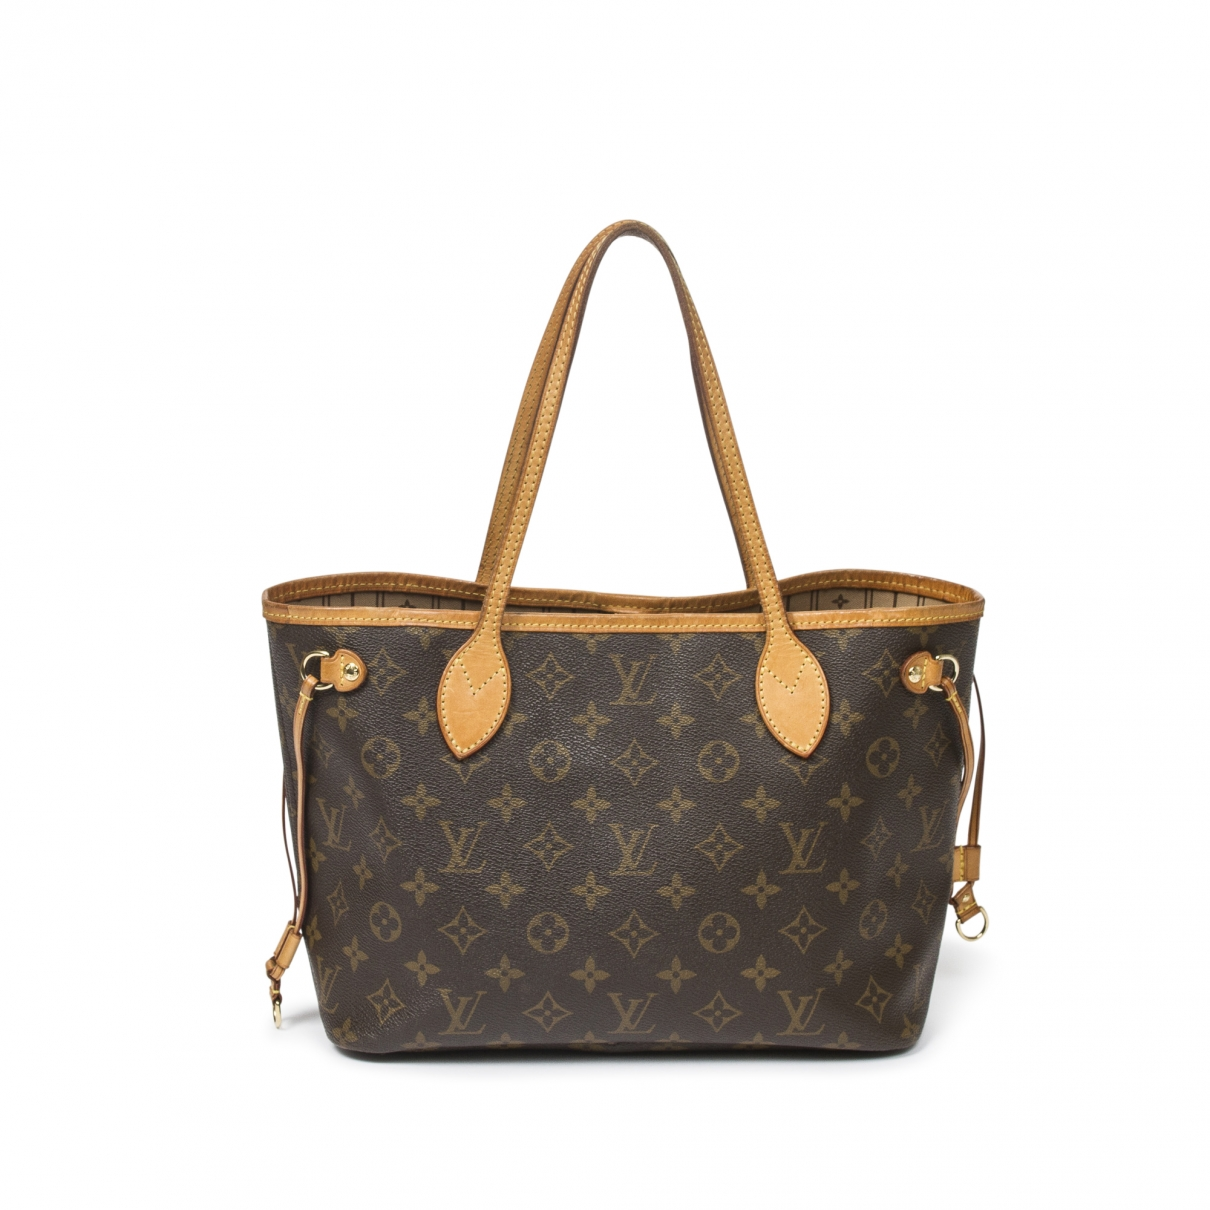 Louis Vuitton Neverfull Handtasche in  Braun Baumwolle